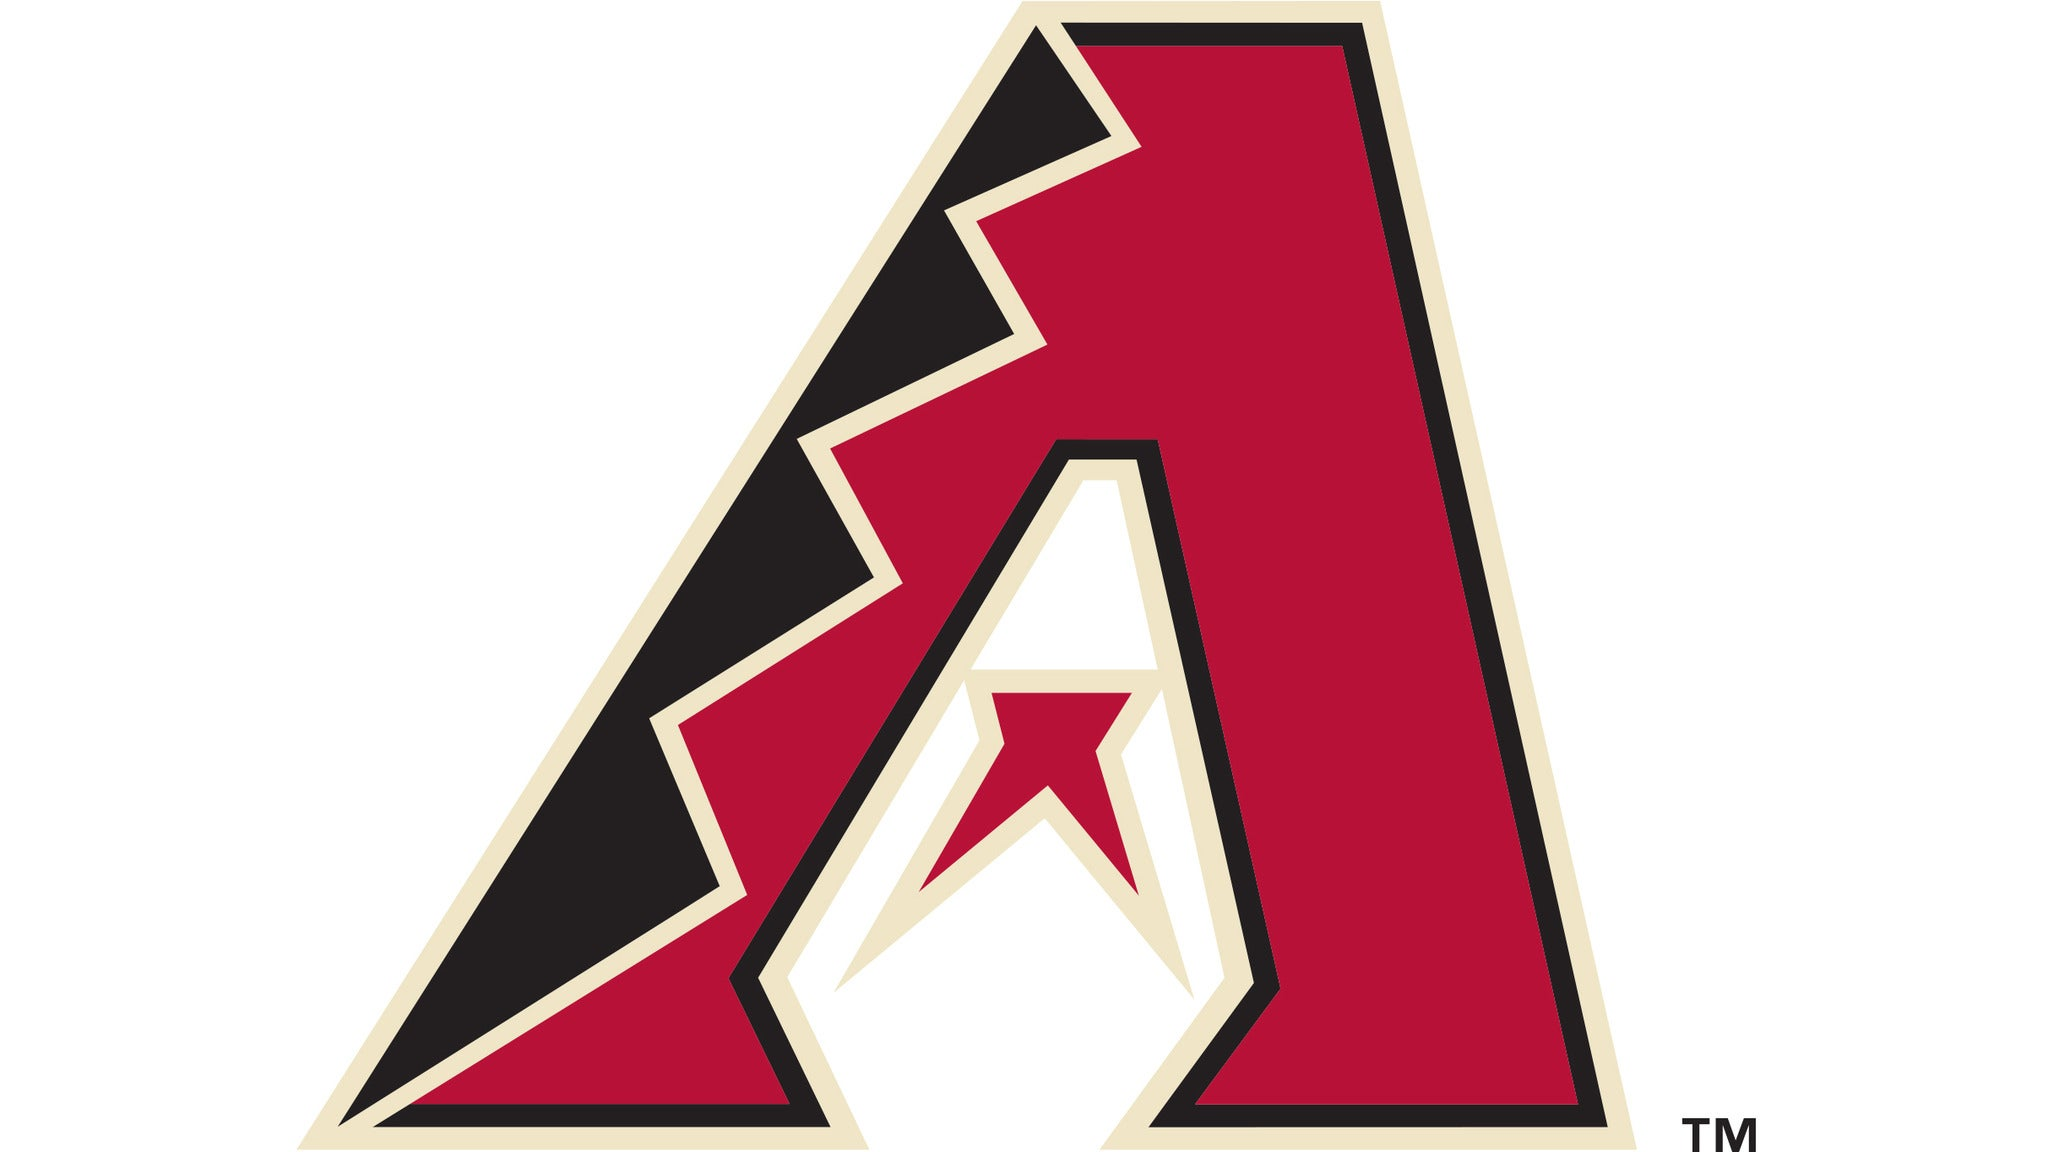 Arizona Diamondbacks vs. St. Louis Cardinals at Chase Field